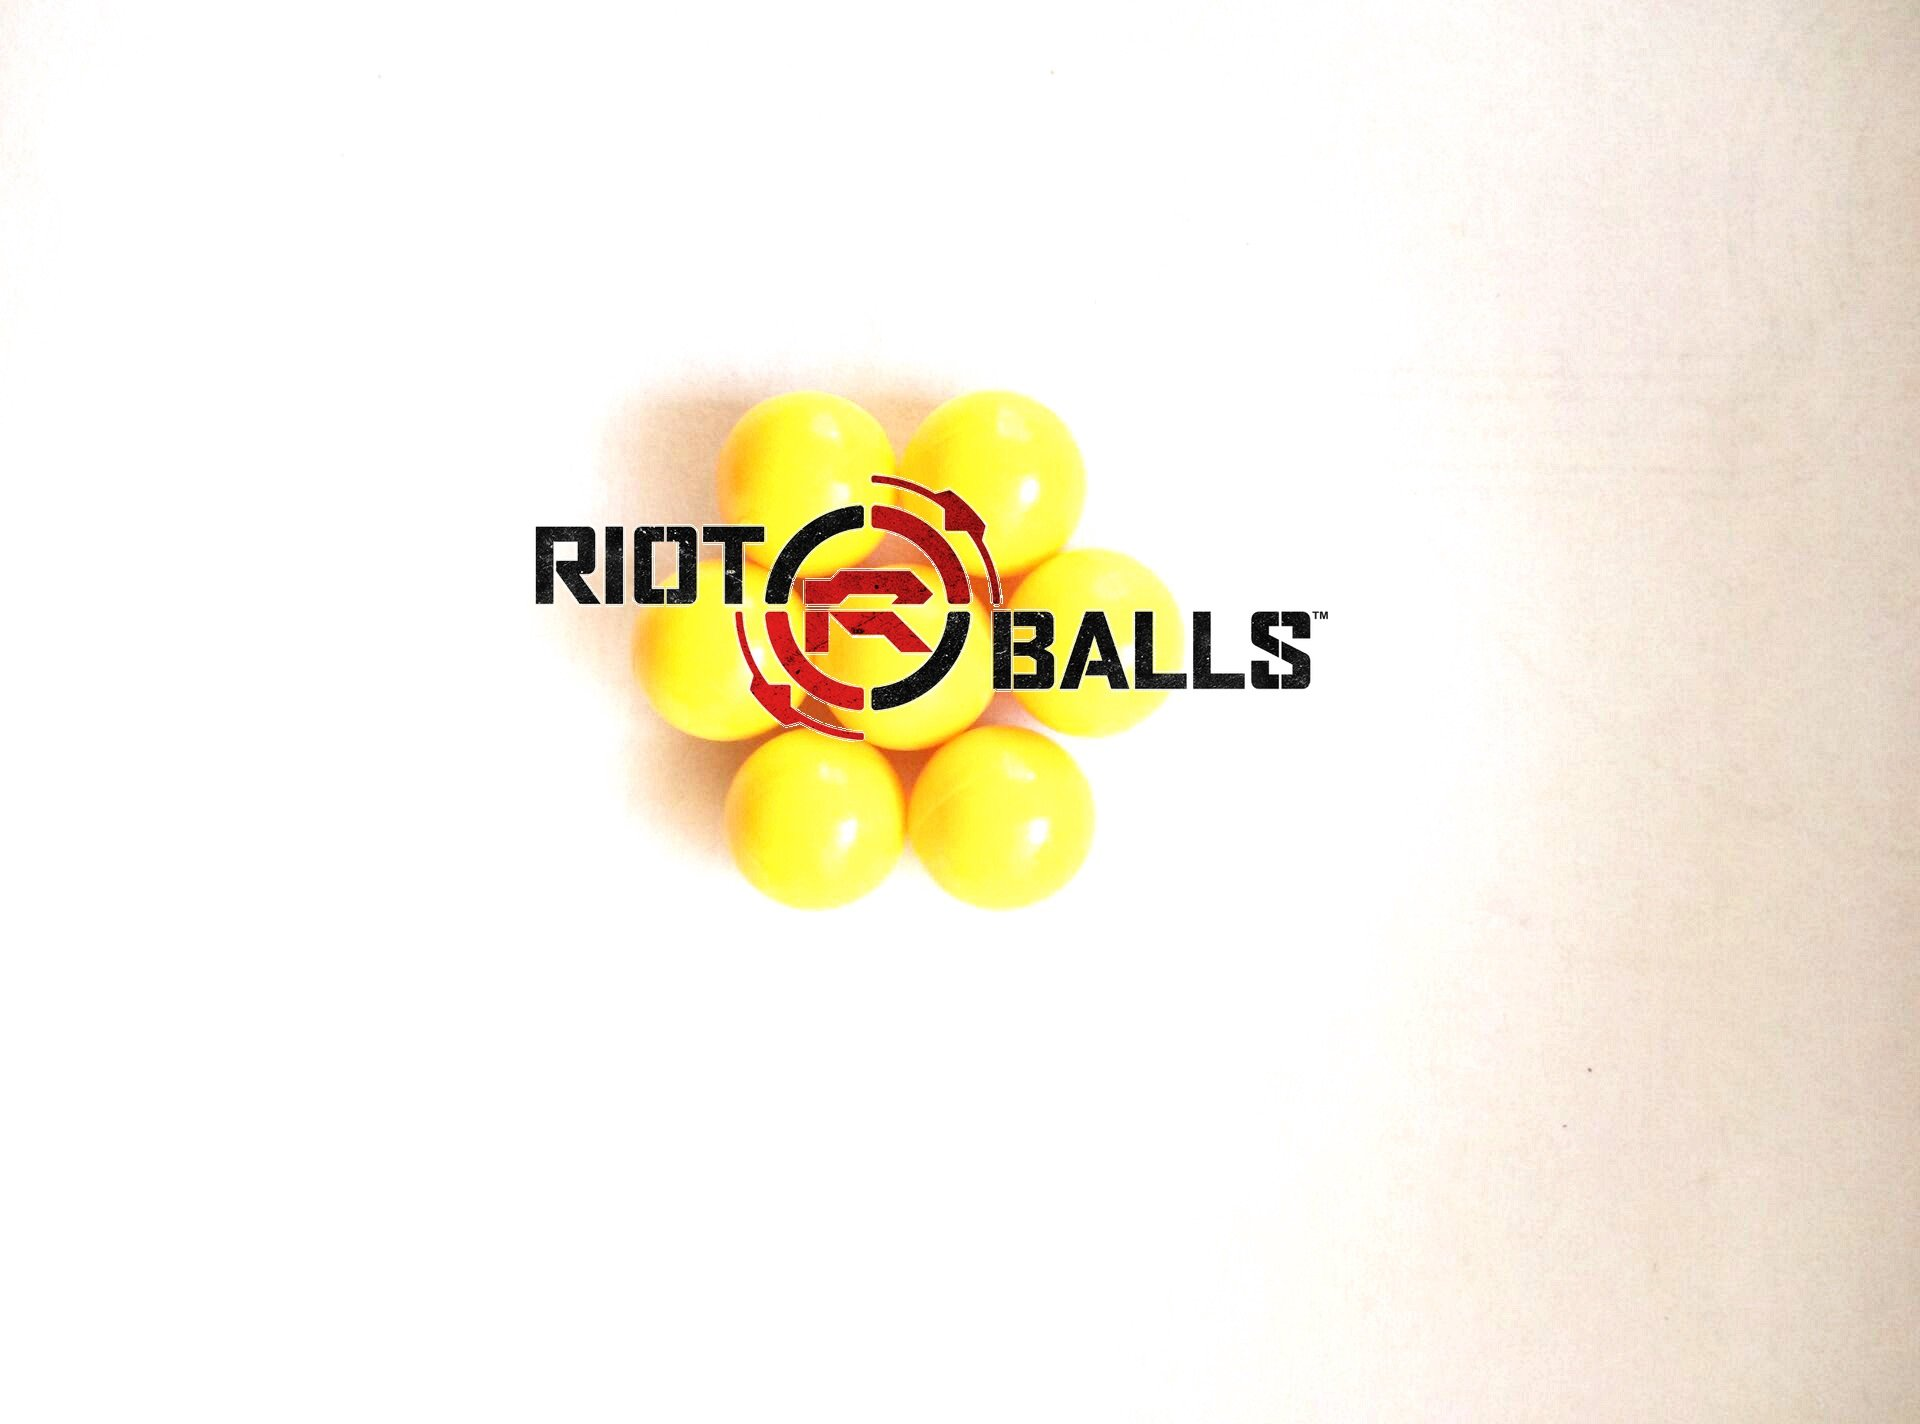 500 Count X 0.43 Cal. Yellow PVC/Nylon Riot Balls Self Defense Less Lethal Practice Paintball